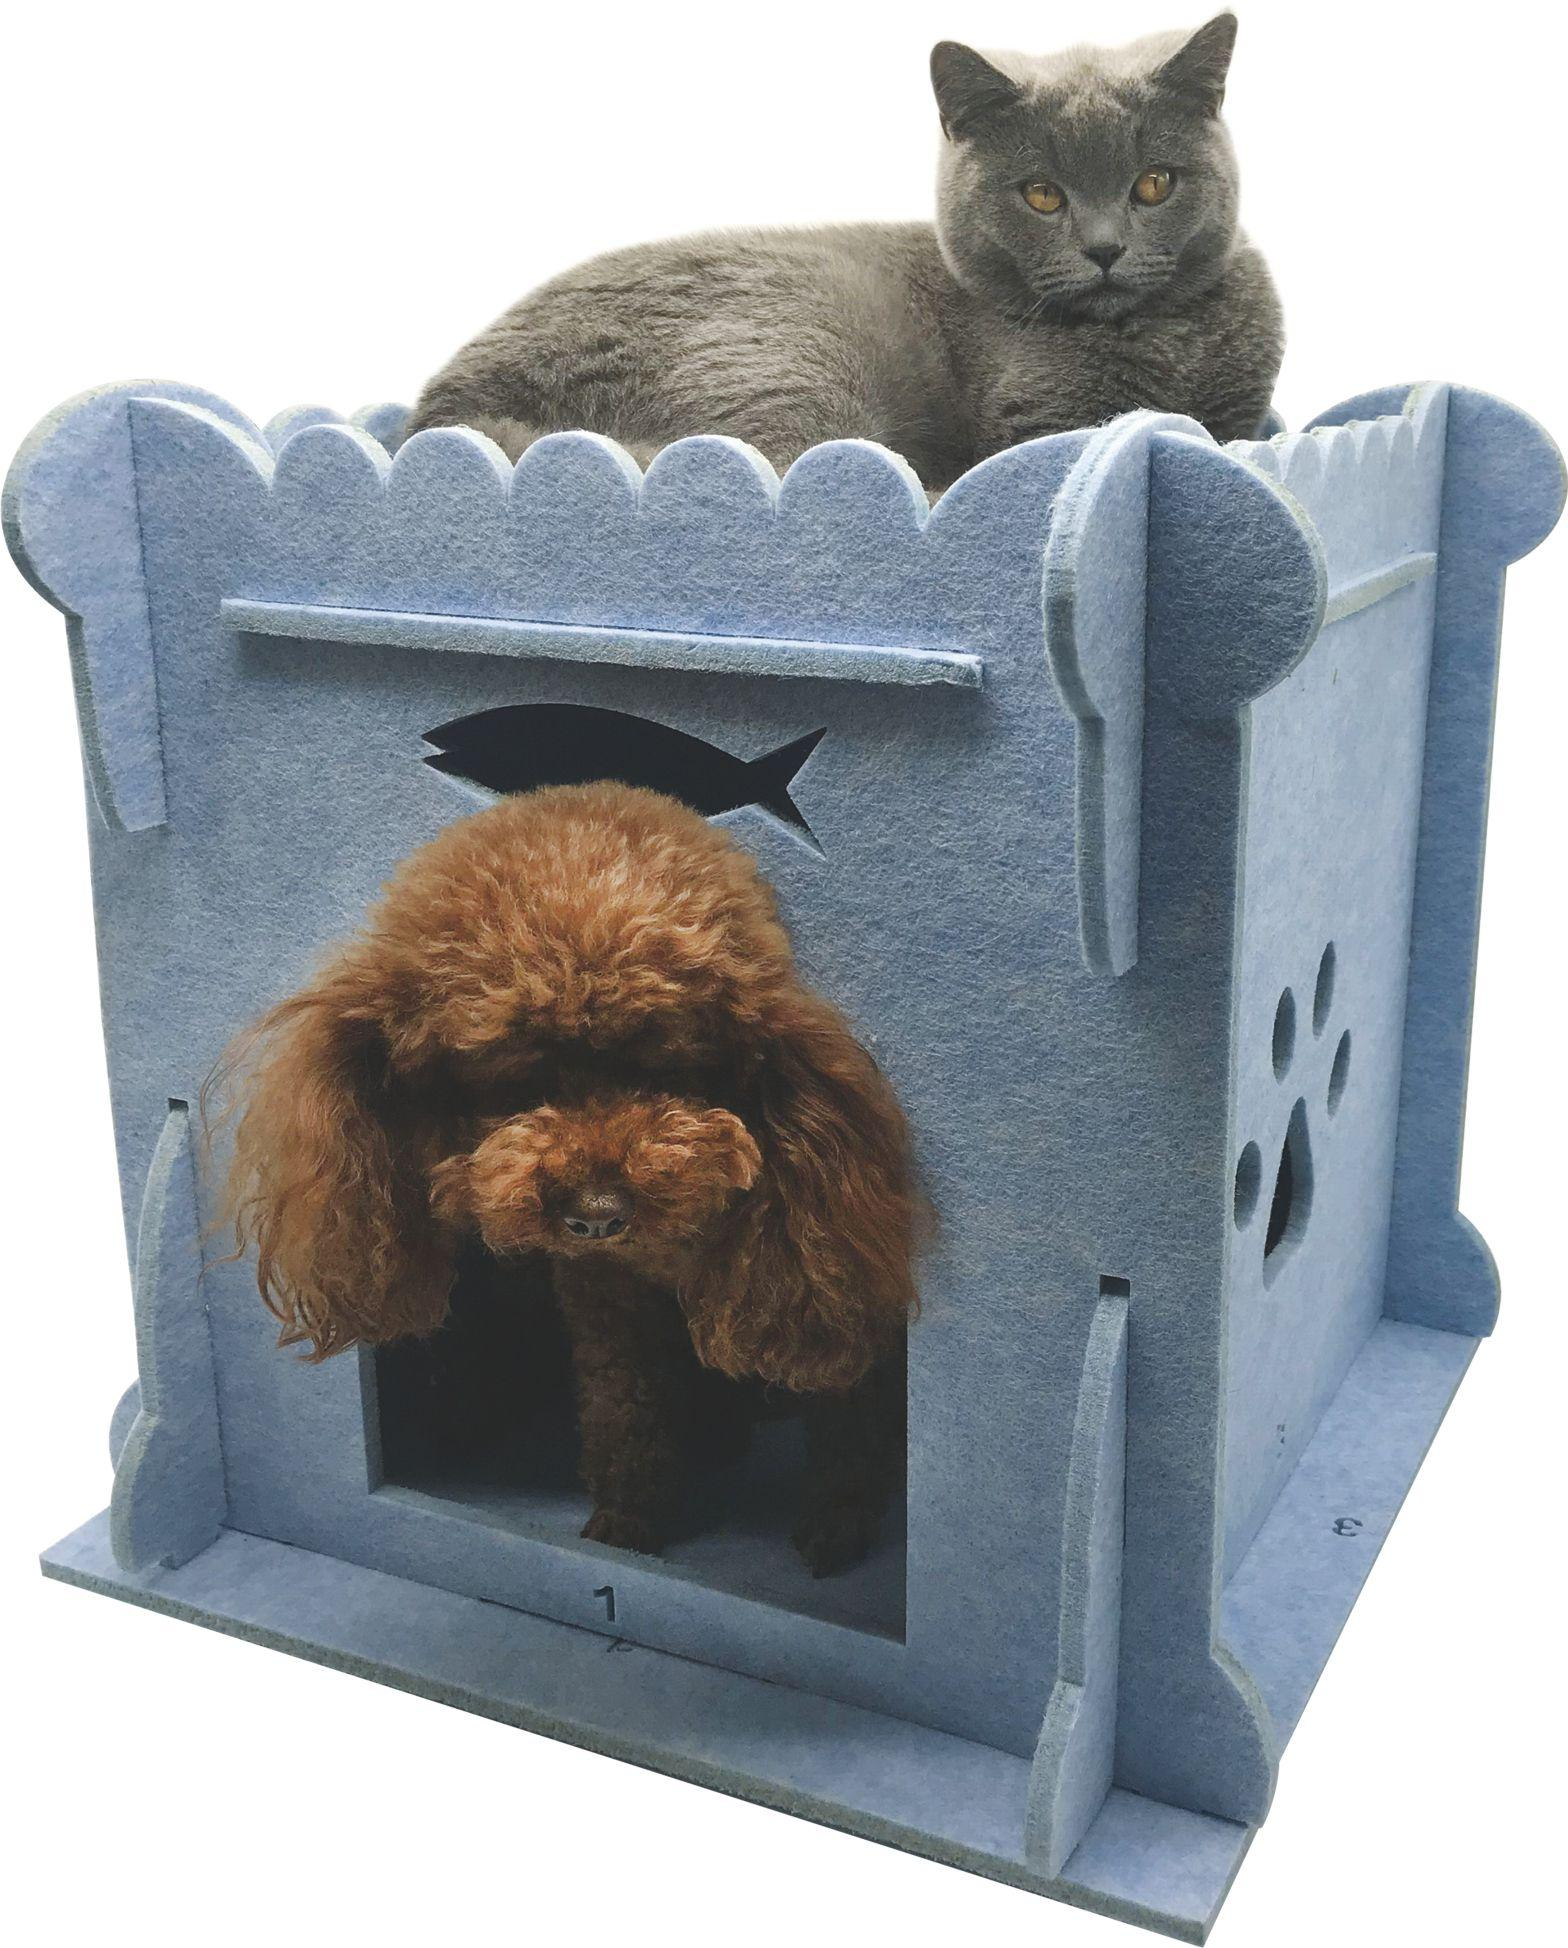 New Arrival Luxury Felt Assembled Cat House 4